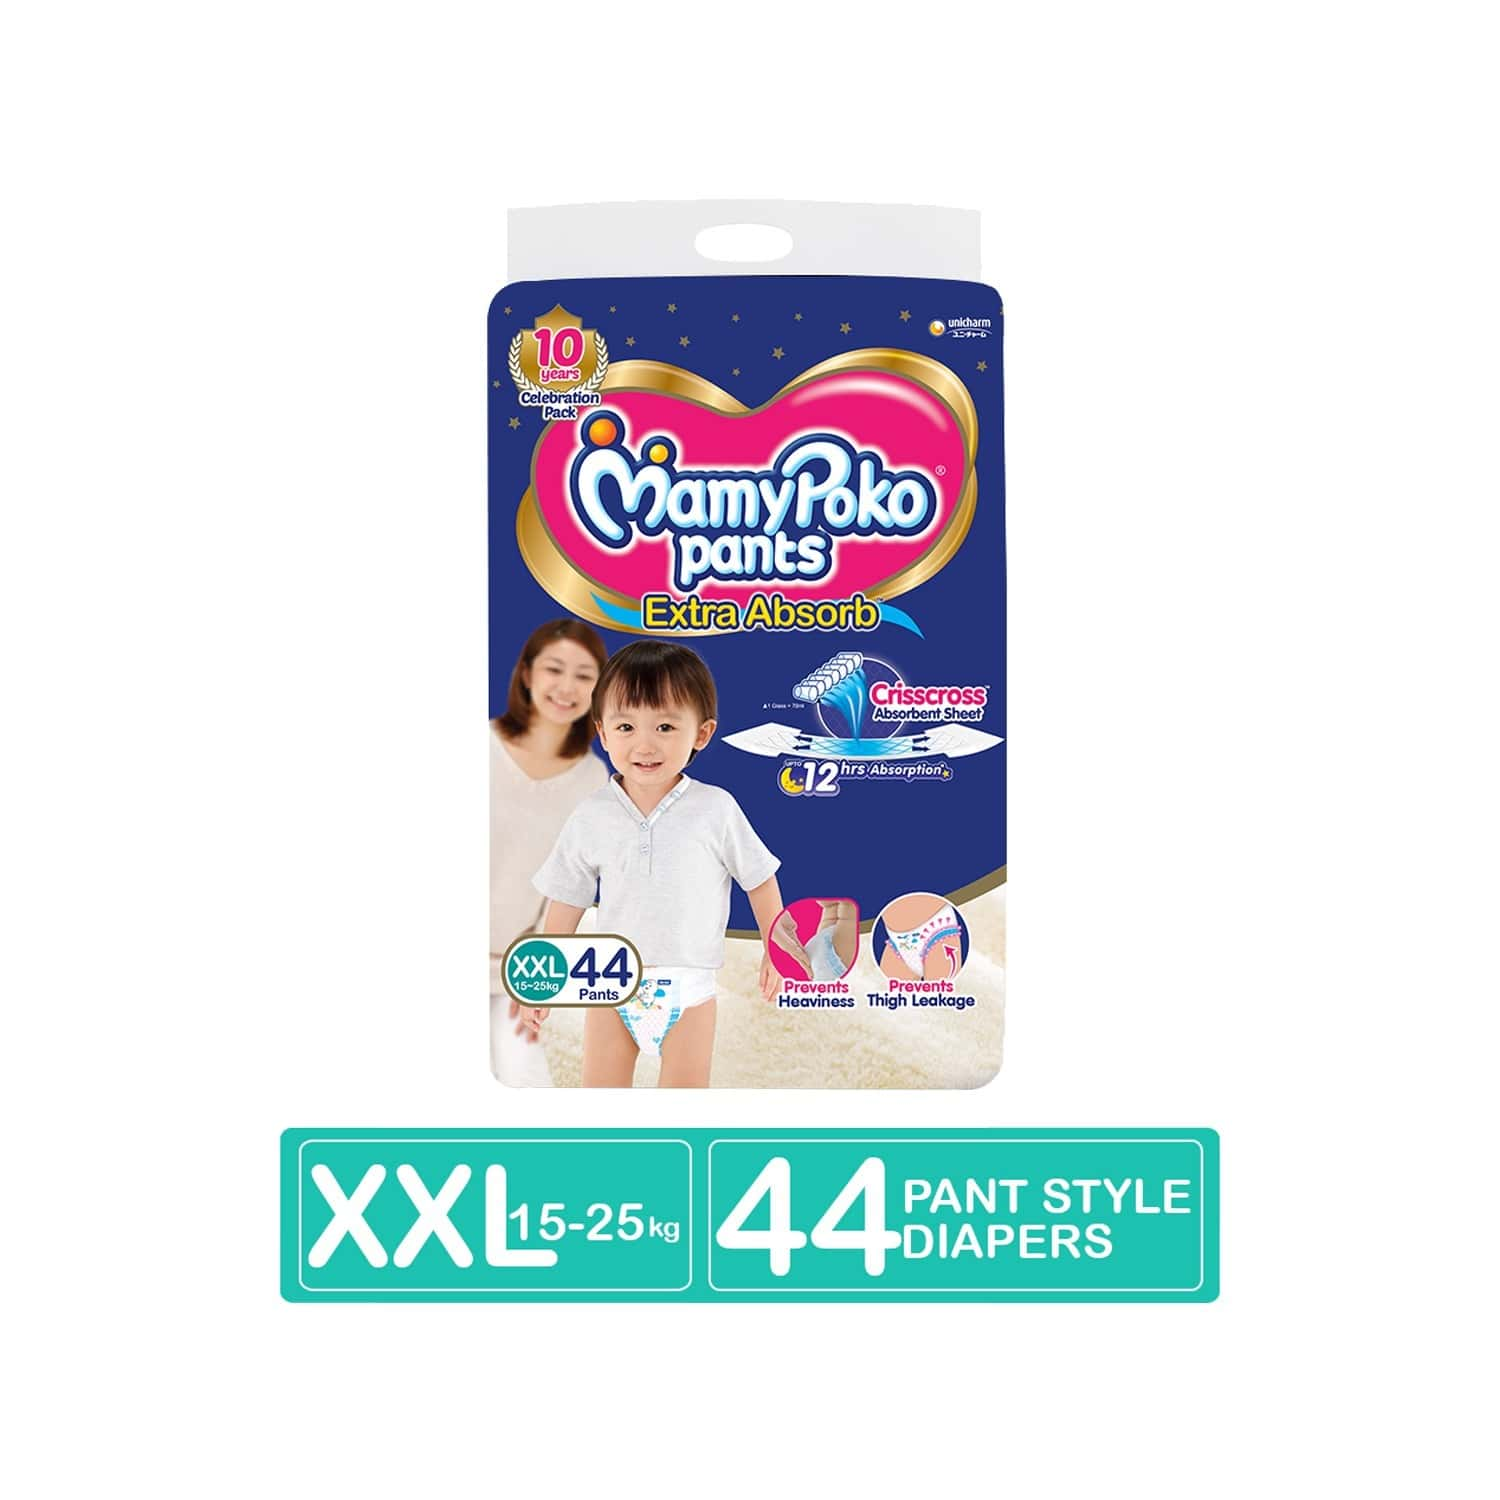 Mamypoko Pants Extra Absorb Diaper - Xxl Size, Pack Of 44 Diapers